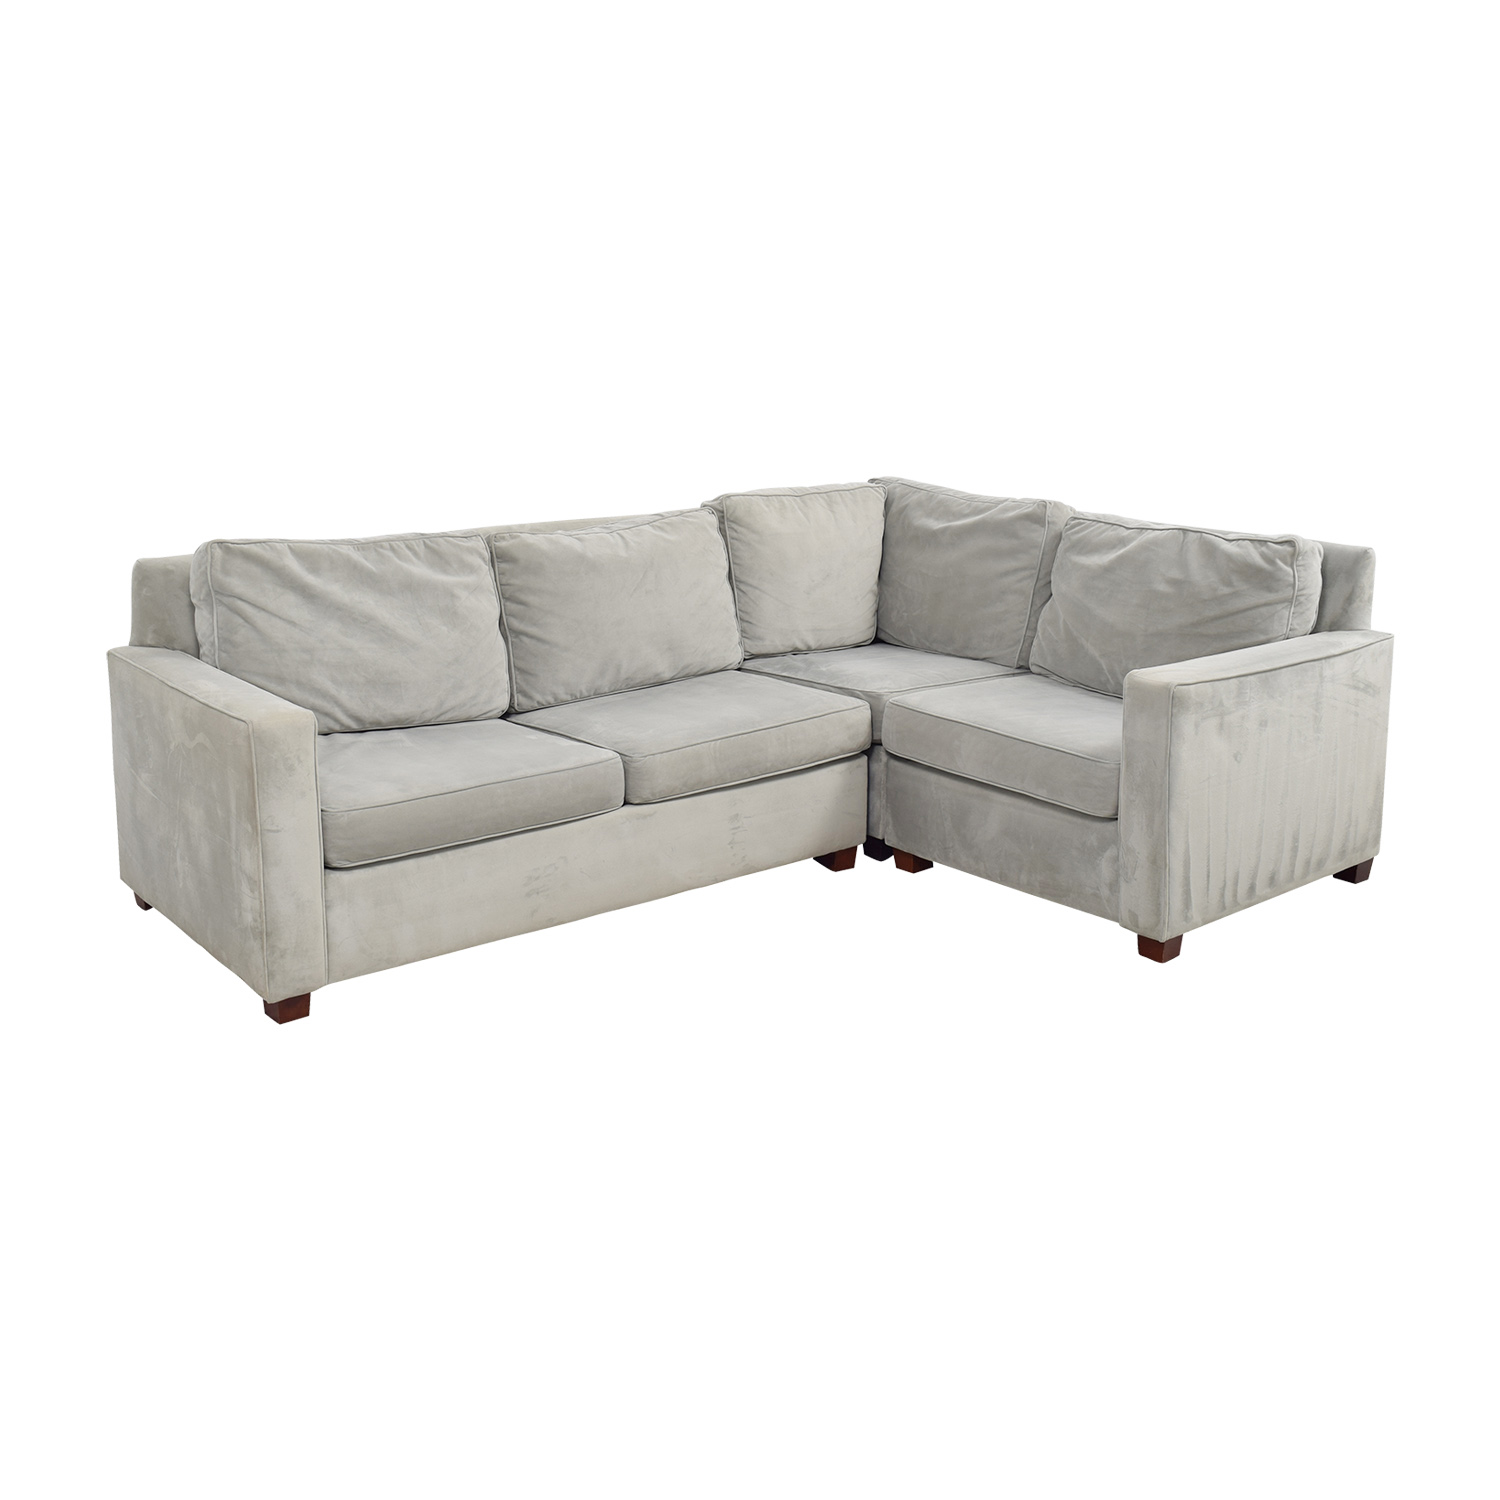 86 Off West Elm West Elm Henry Velvet Stone Sectional